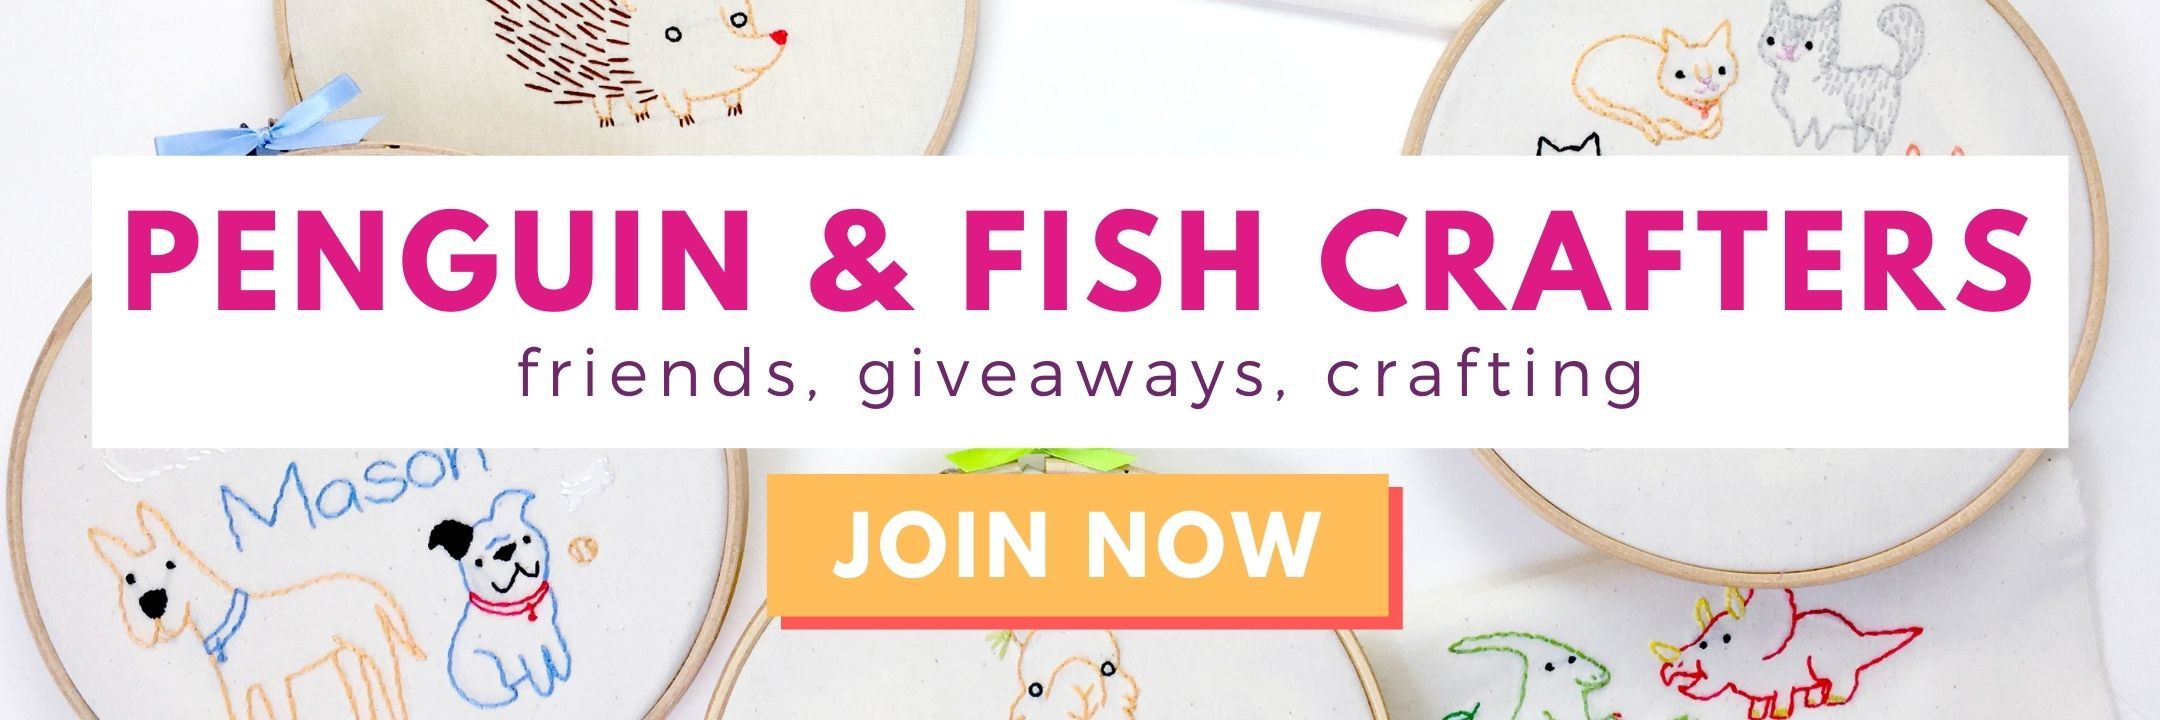 Private Facebook group, Penguin & Fish Crafters.